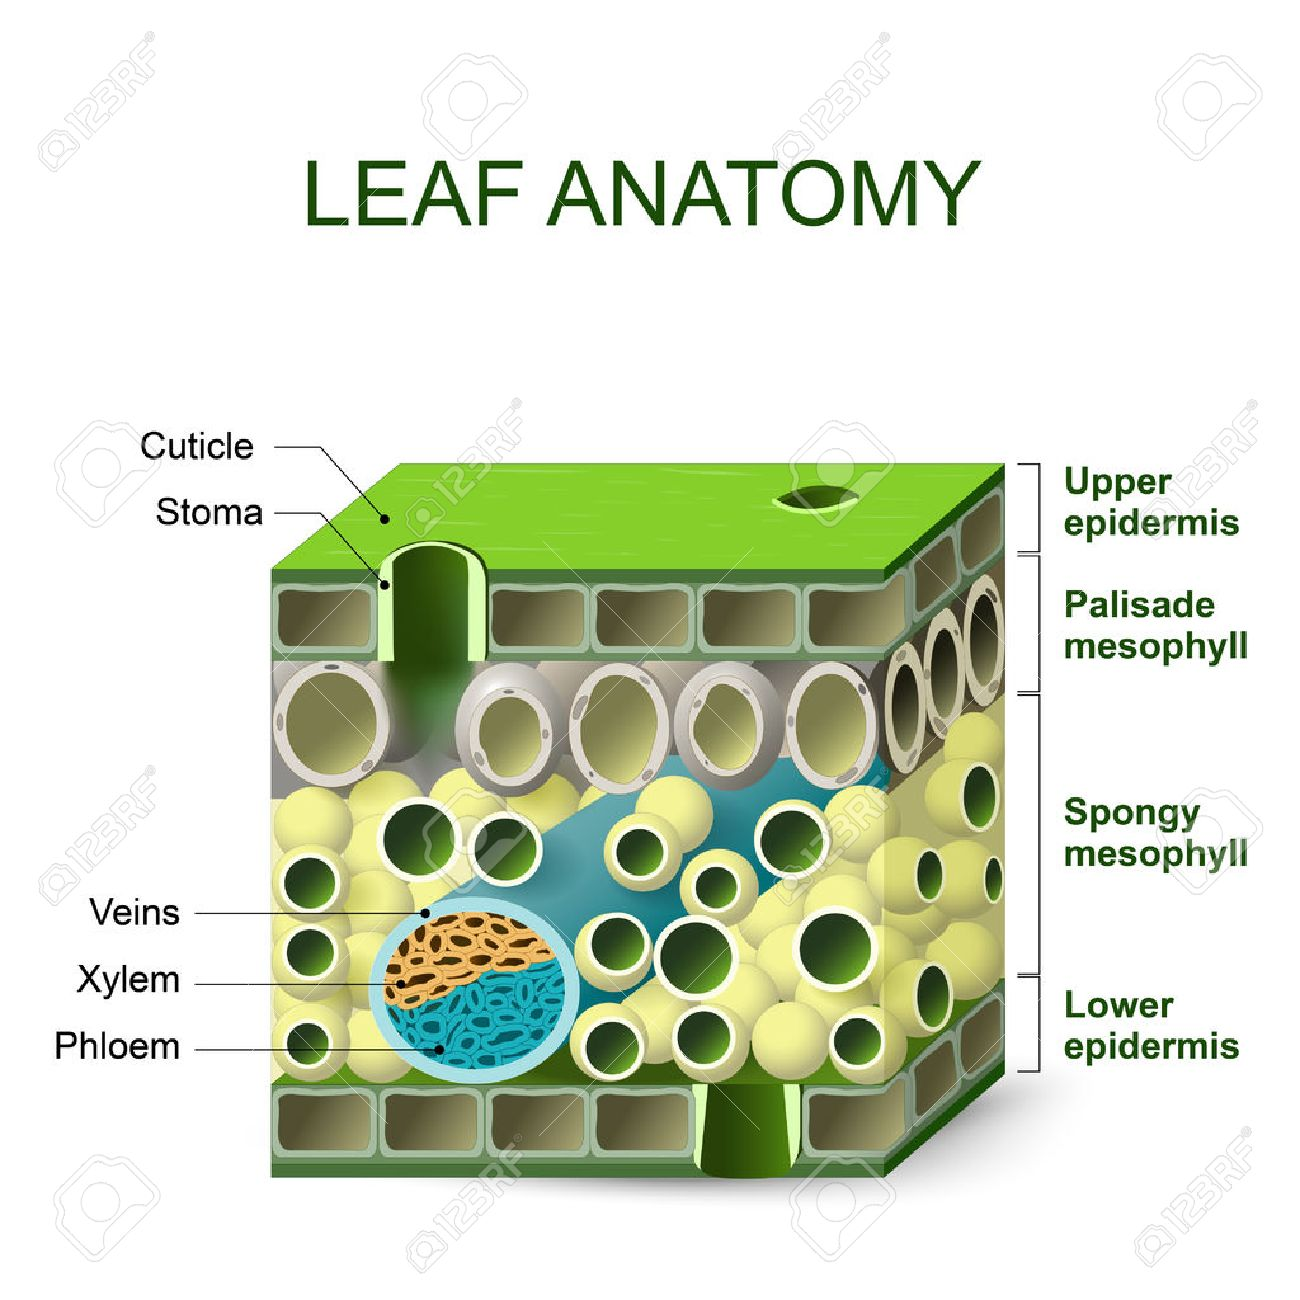 63903573-leaf-anatomy-diagram-of-leaf-structure